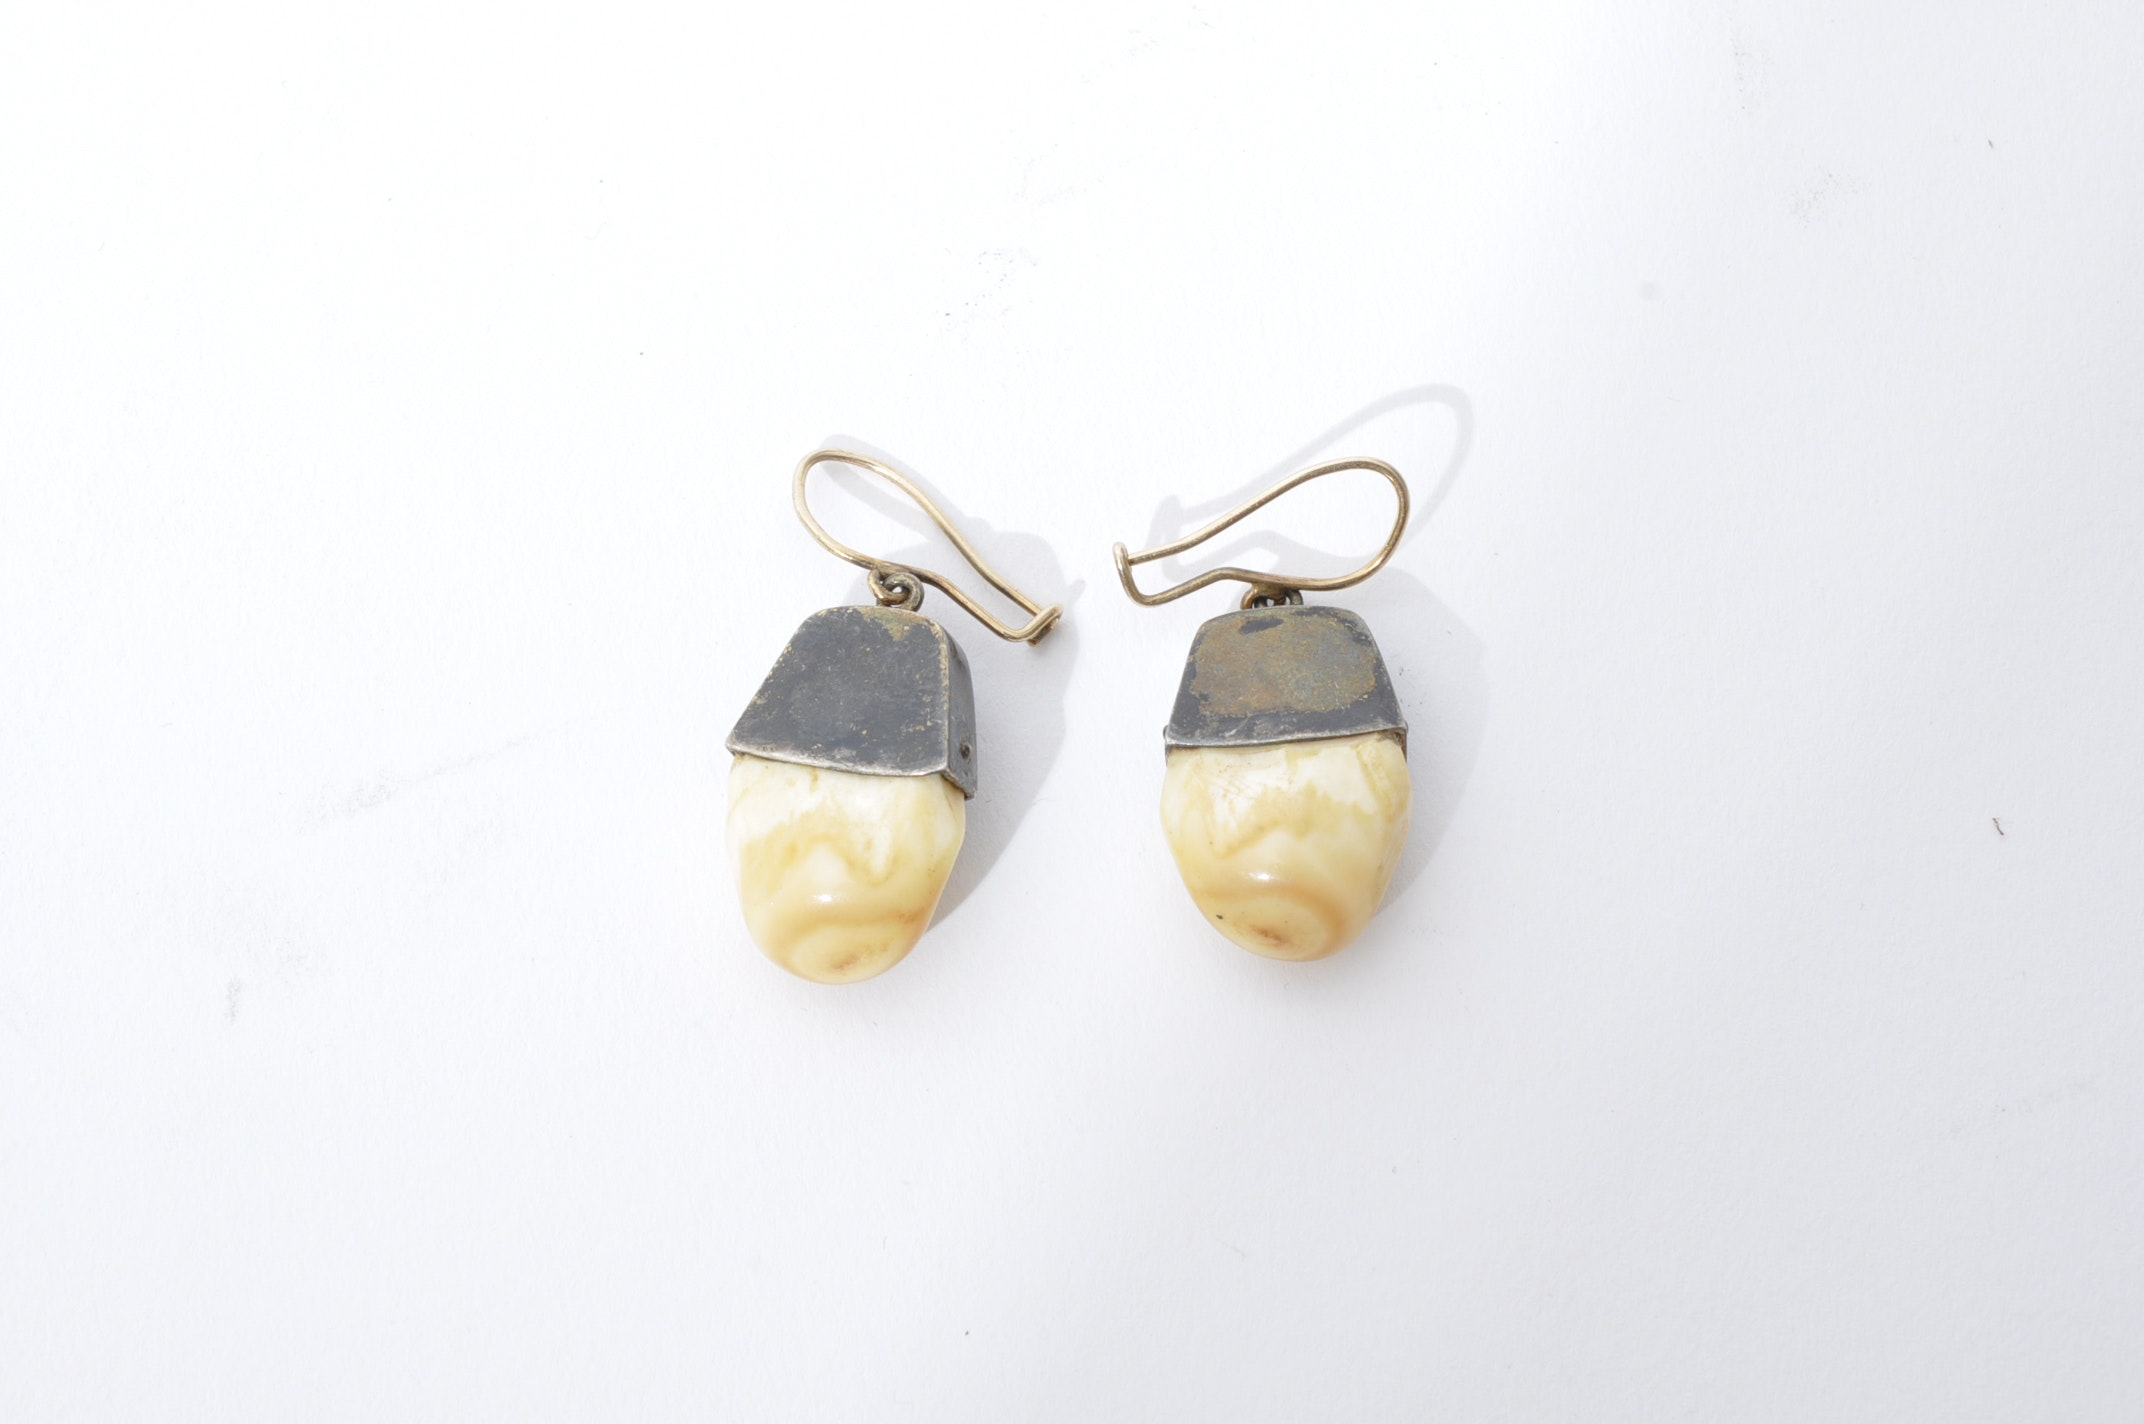 Pair of Sterling Silver and Elk Ivory Earrings